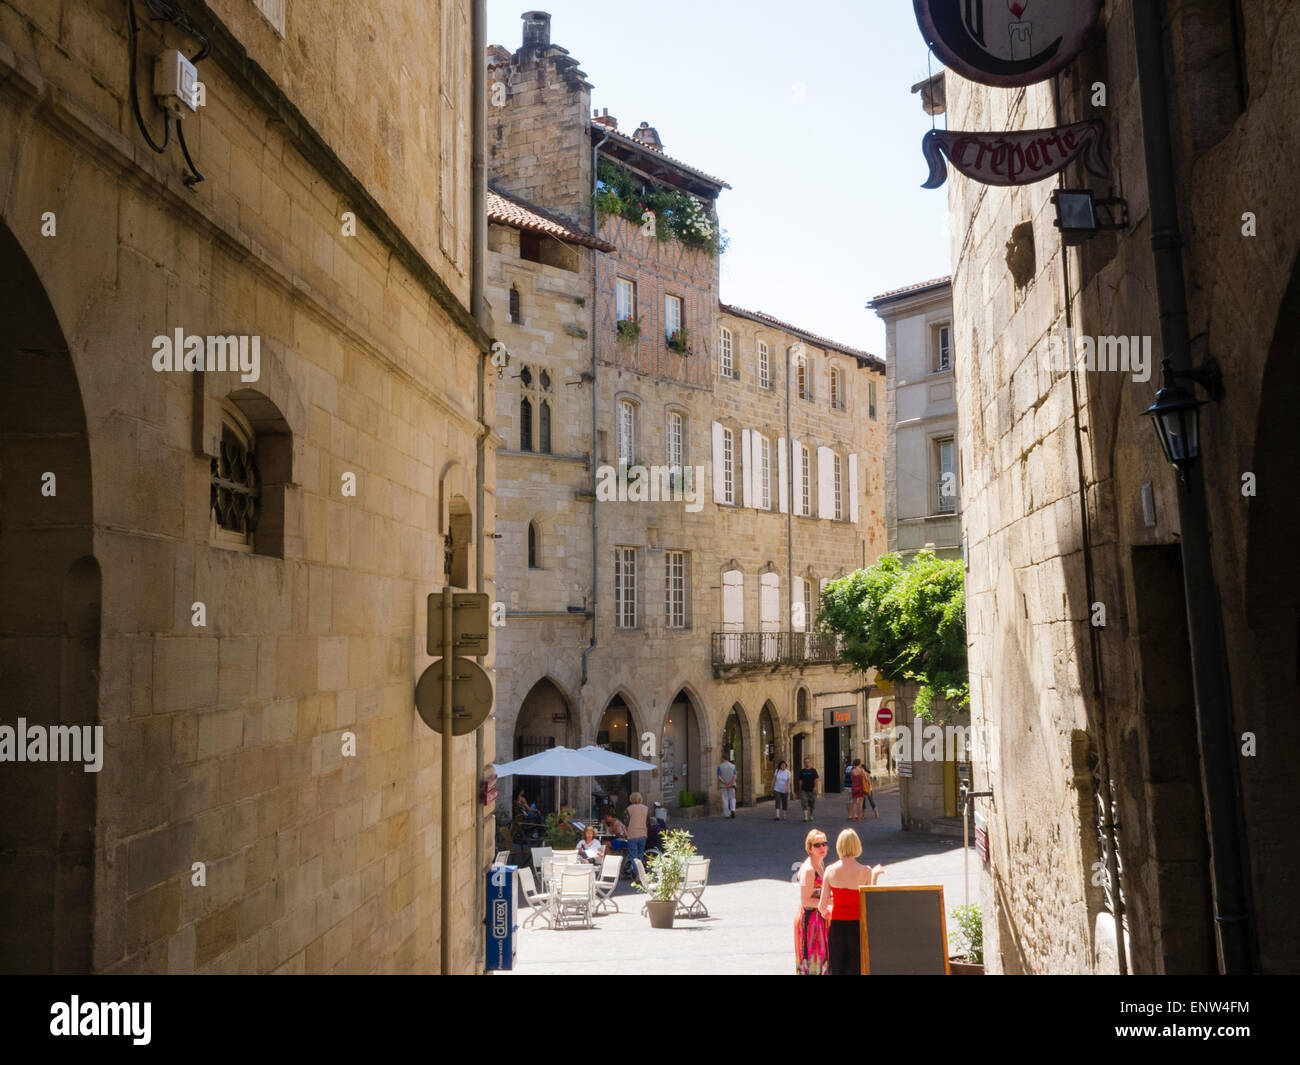 The historical town of Figeac in the Lot region of France is famous for its old merchants' houses with roof terraces. Stock Photo